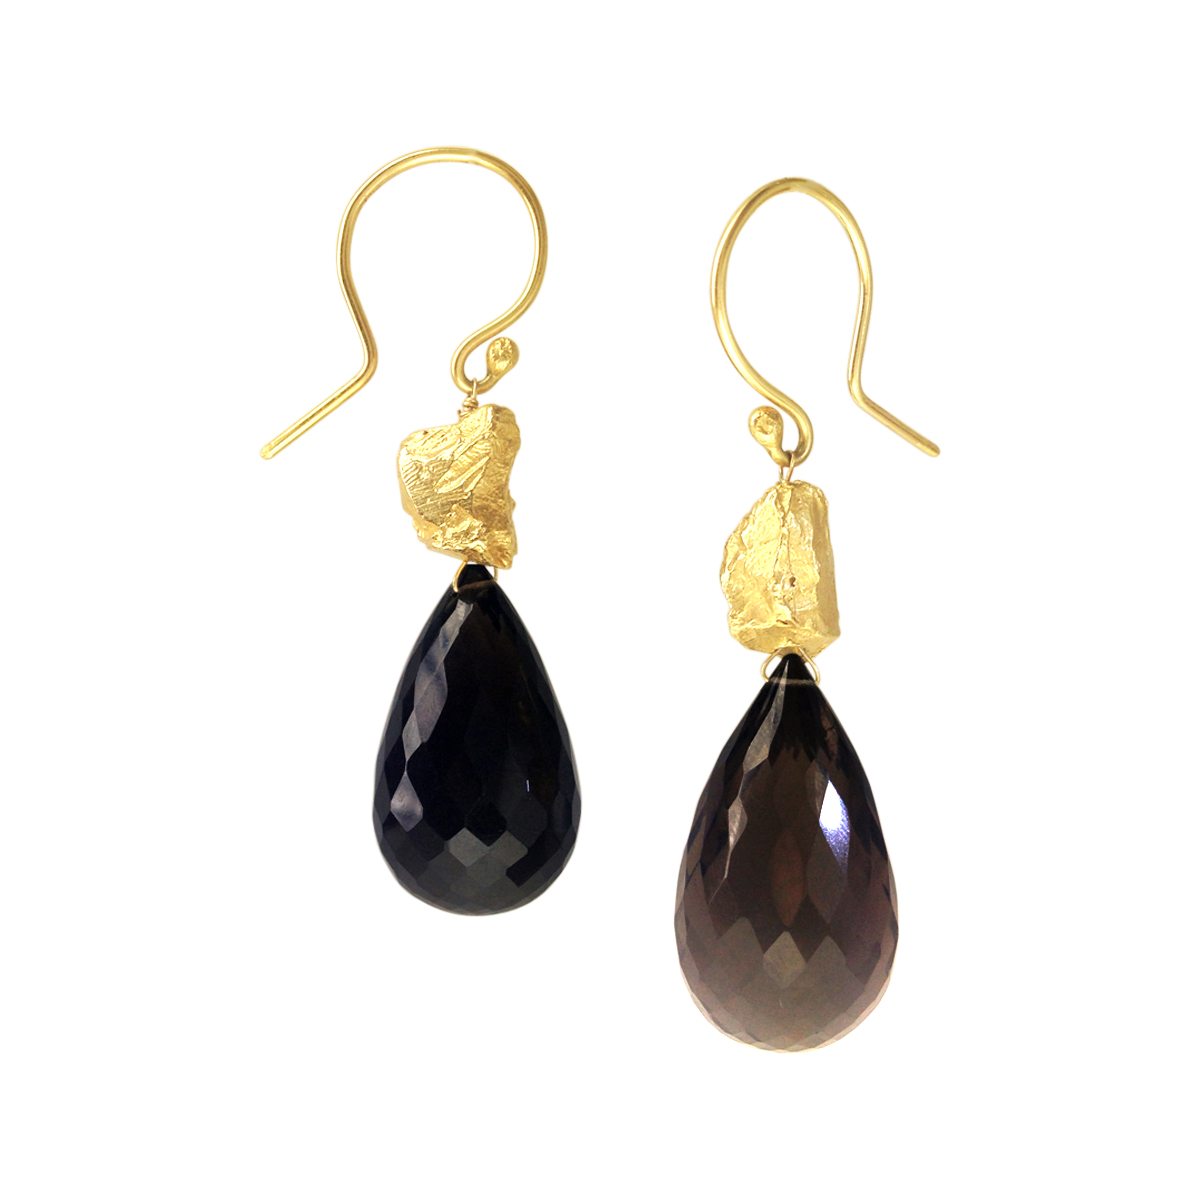 Boulder smoky quartz earrings